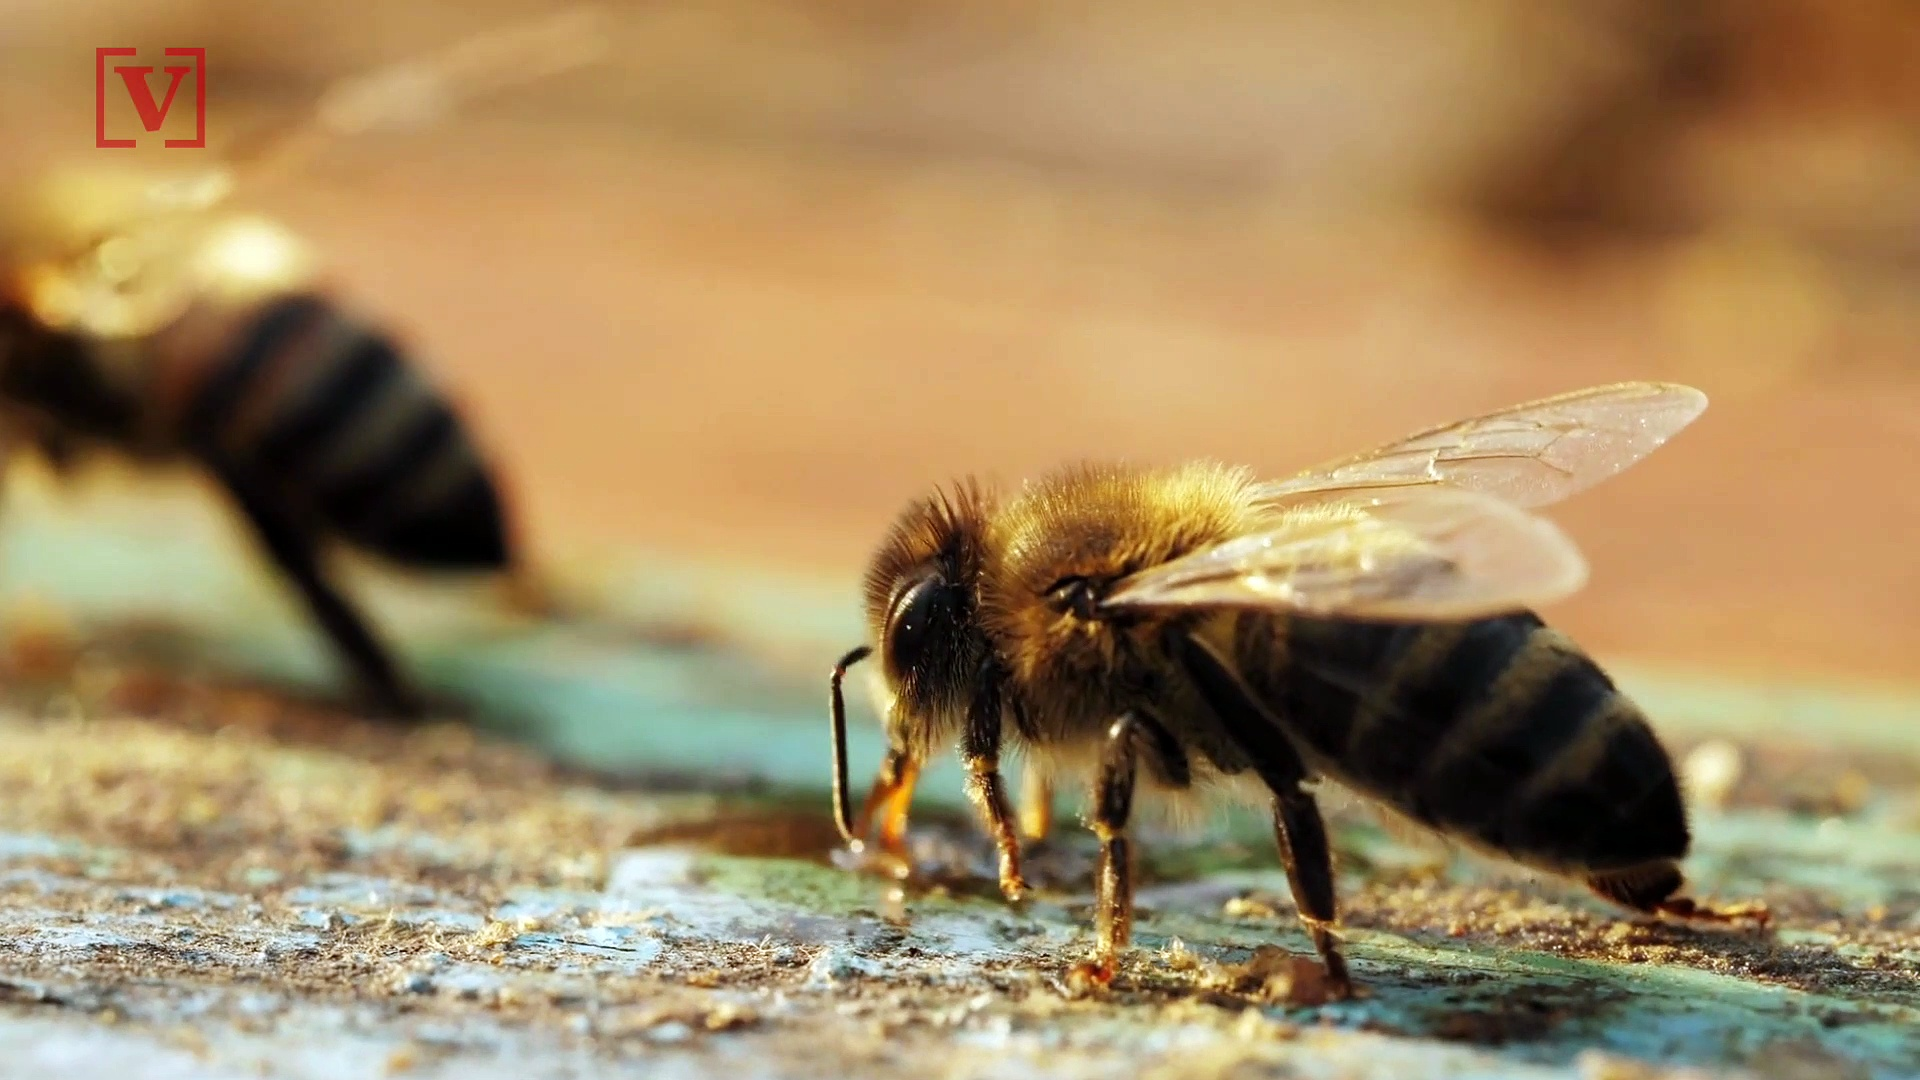 Male Honey Bees Blind Queens After Mating For This Reason